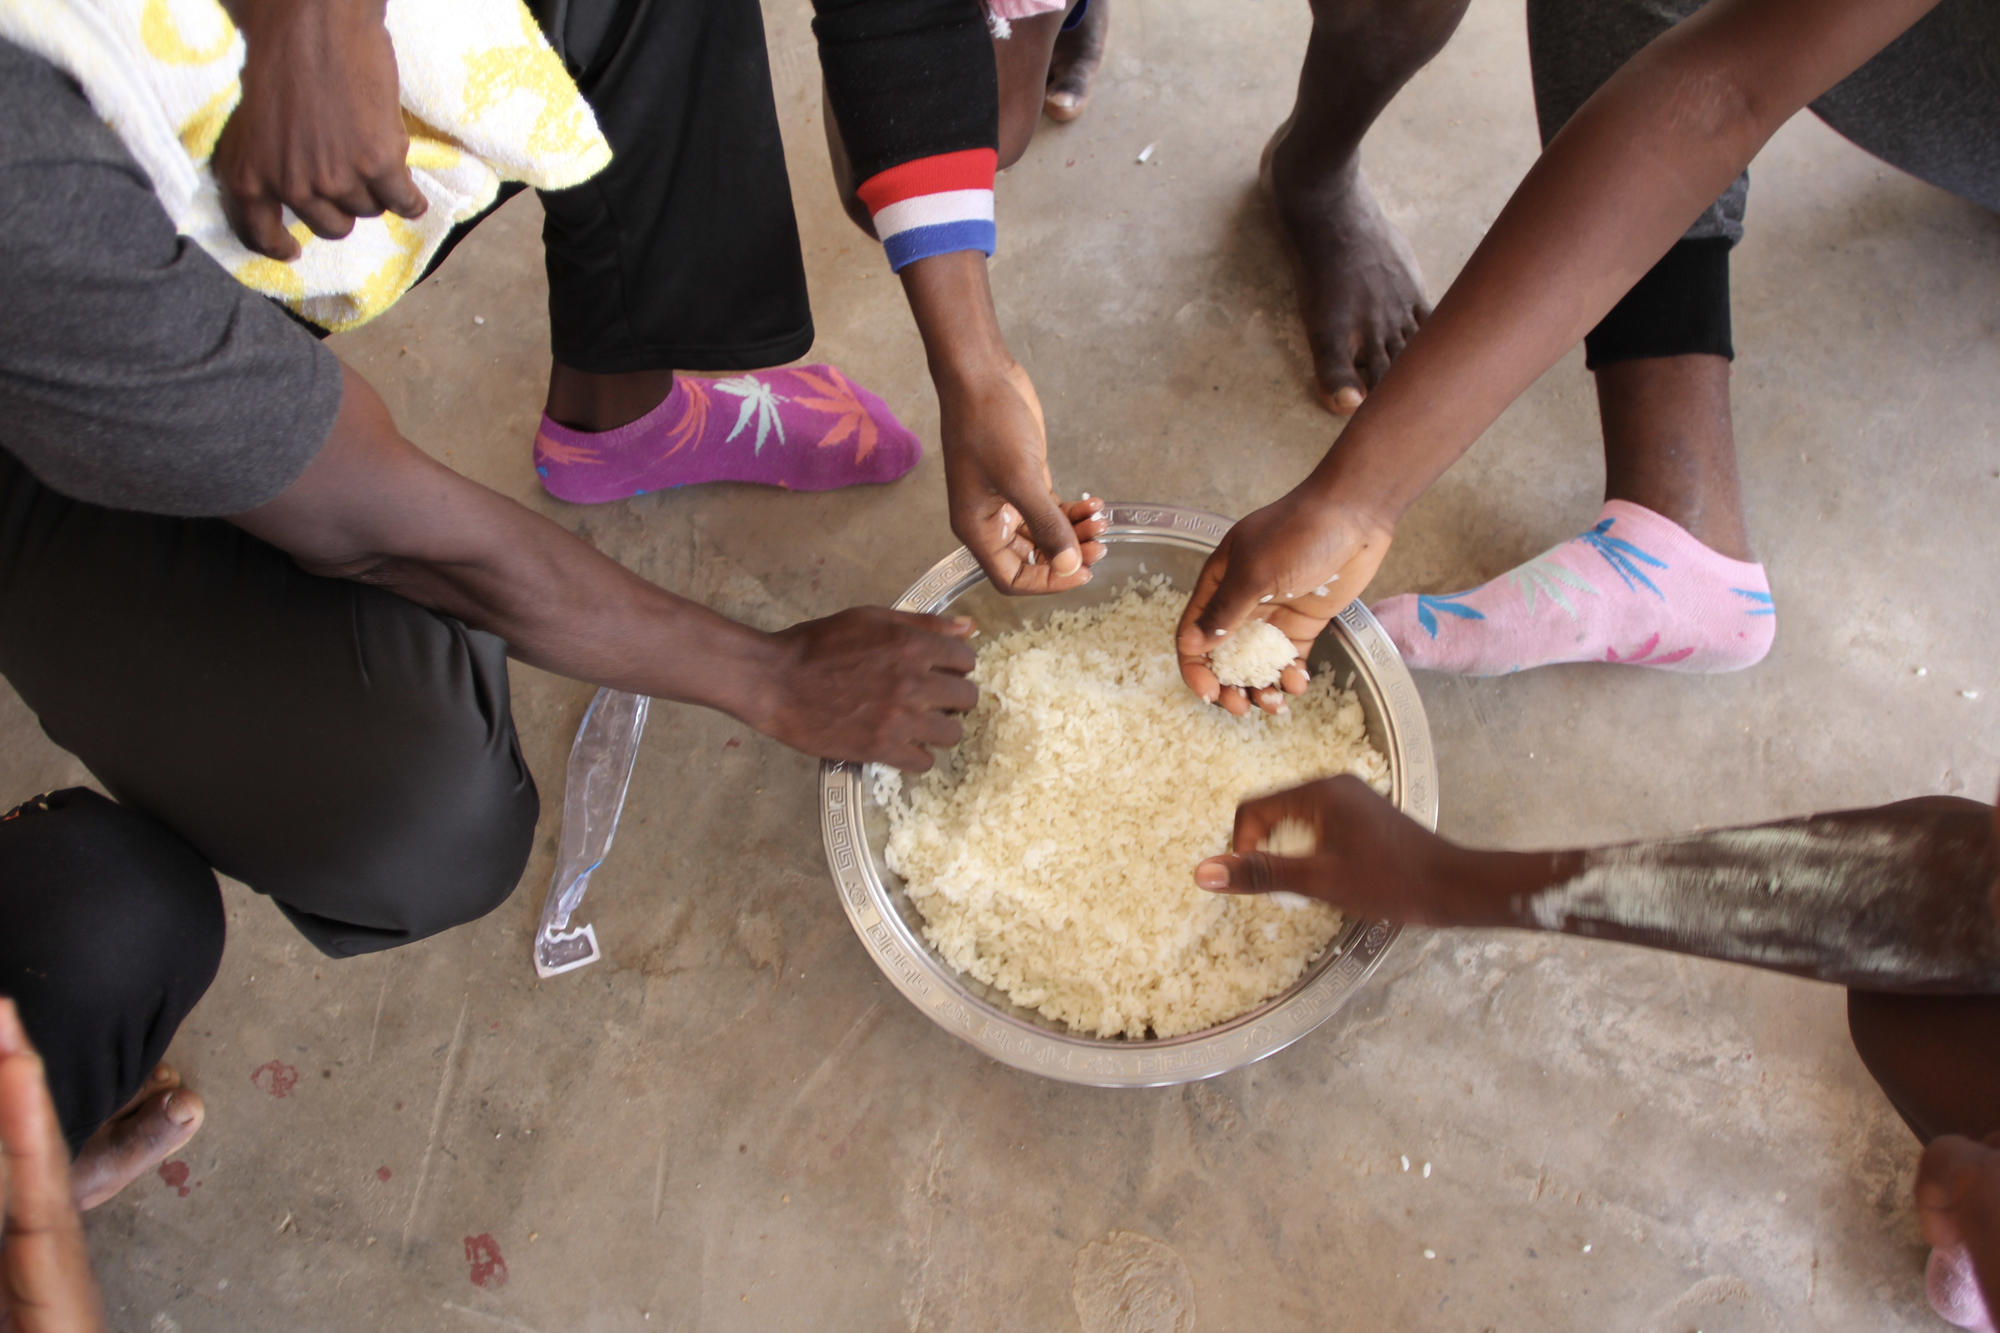 Refugees and migrants detained in the detention centre get rice or pasta for lunch and dinner.